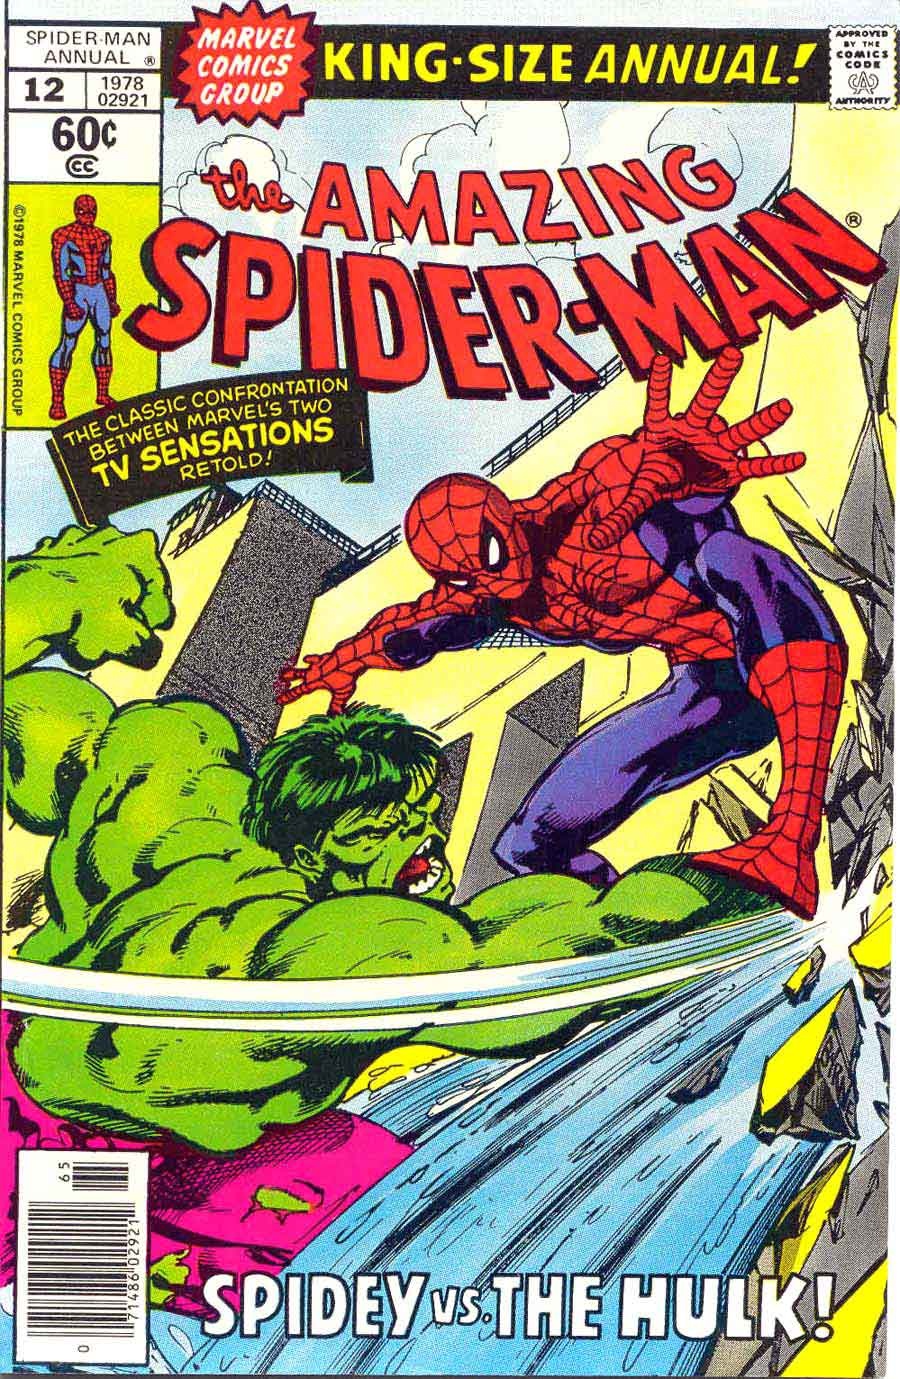 Amazing Spider-Man v1 annual #12 marvel comic book cover art by John Byrne